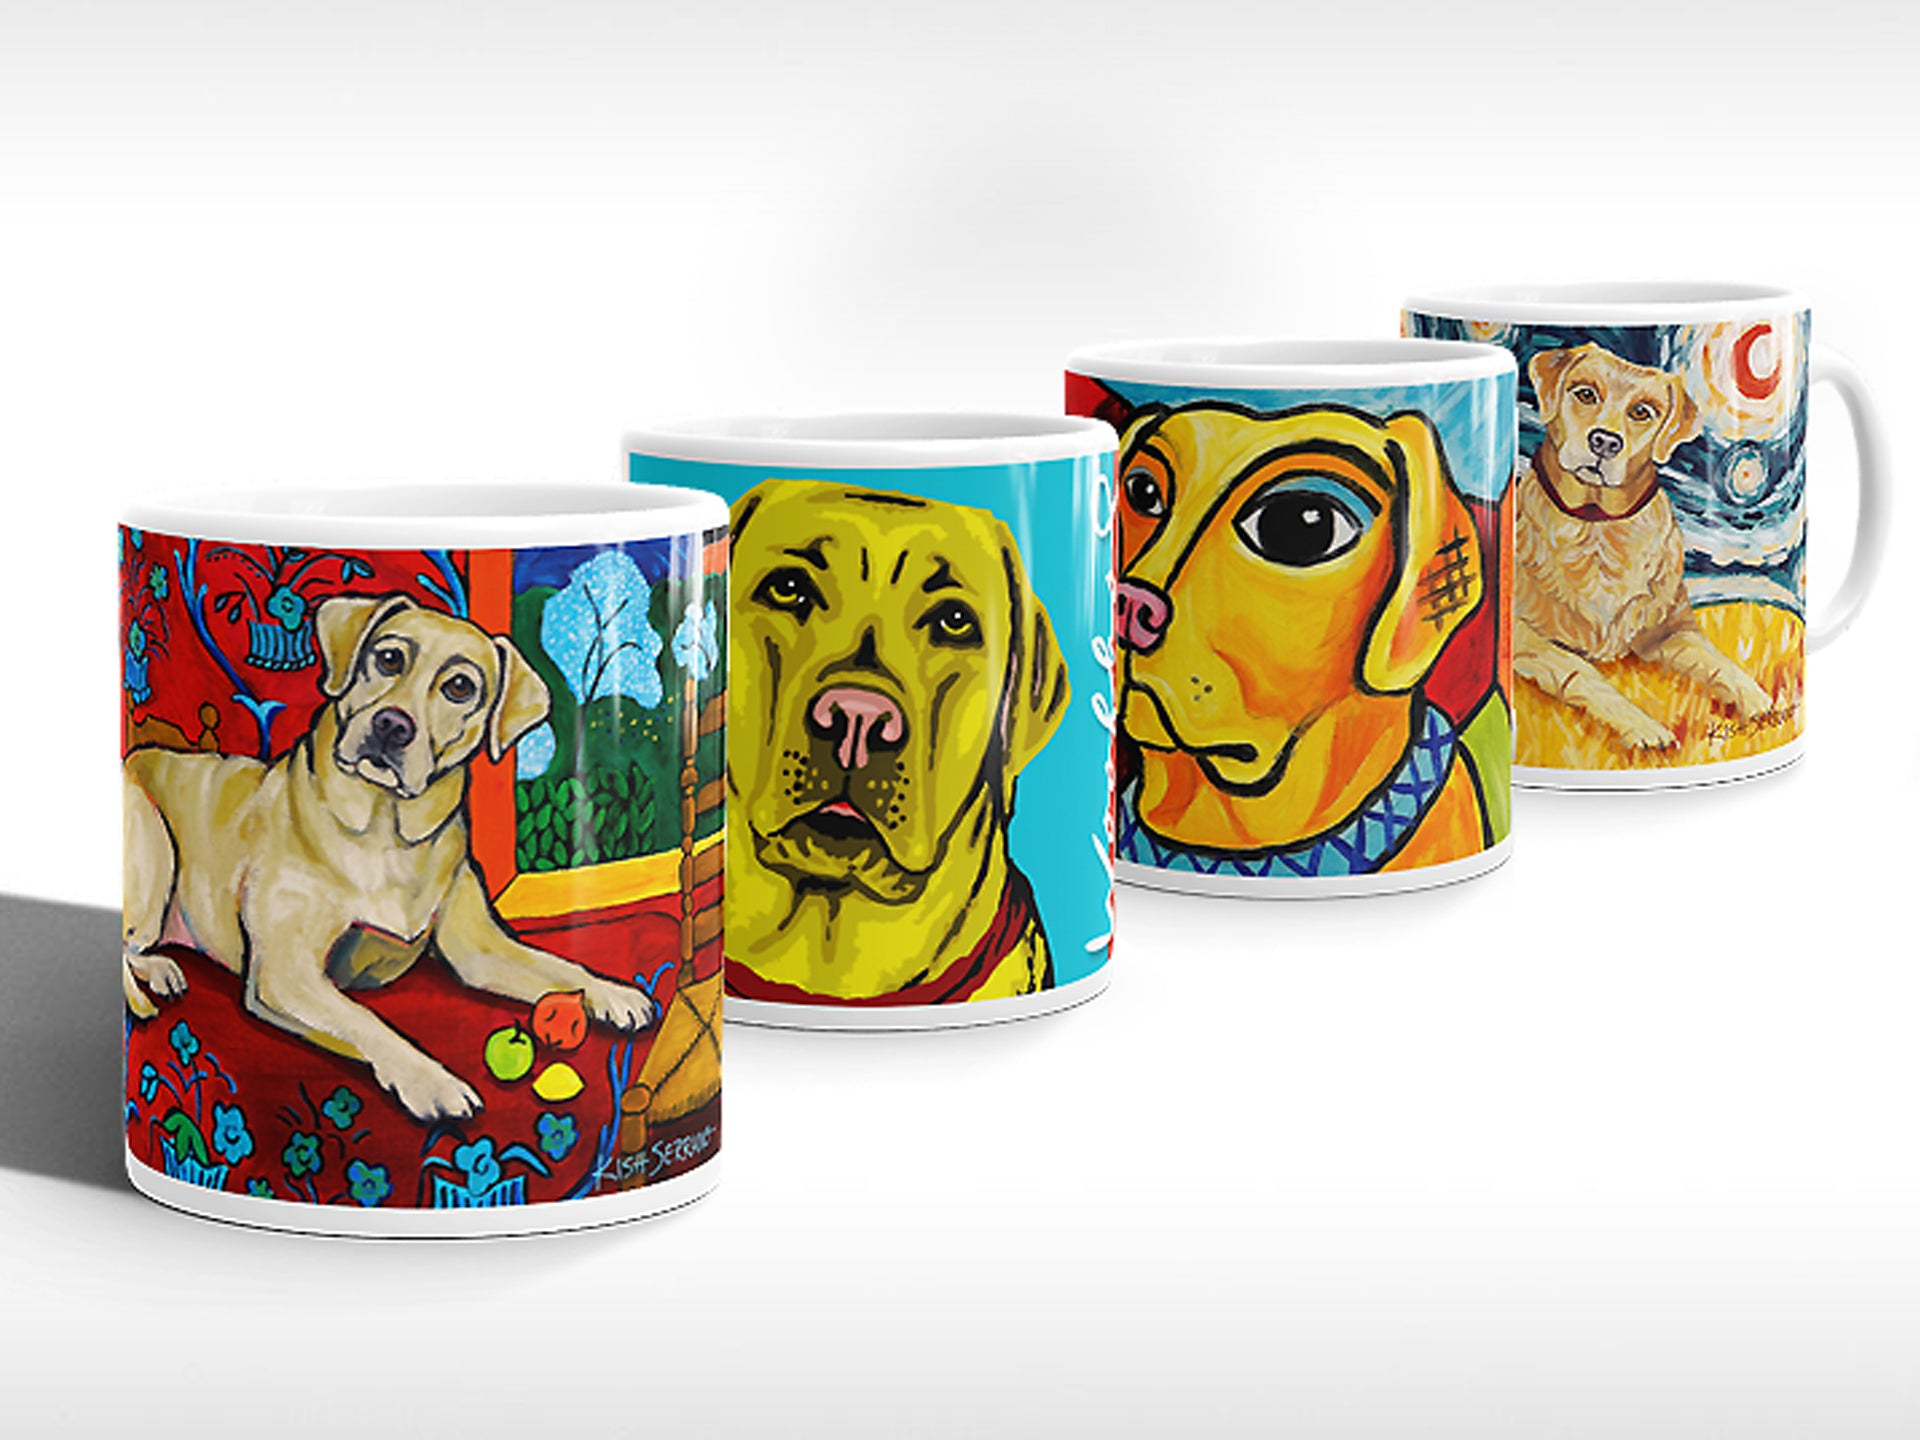 Yellow labrador dog art collection in coffee mugs inspired by Matisse, Warhol, Picasso and Van Gogh..